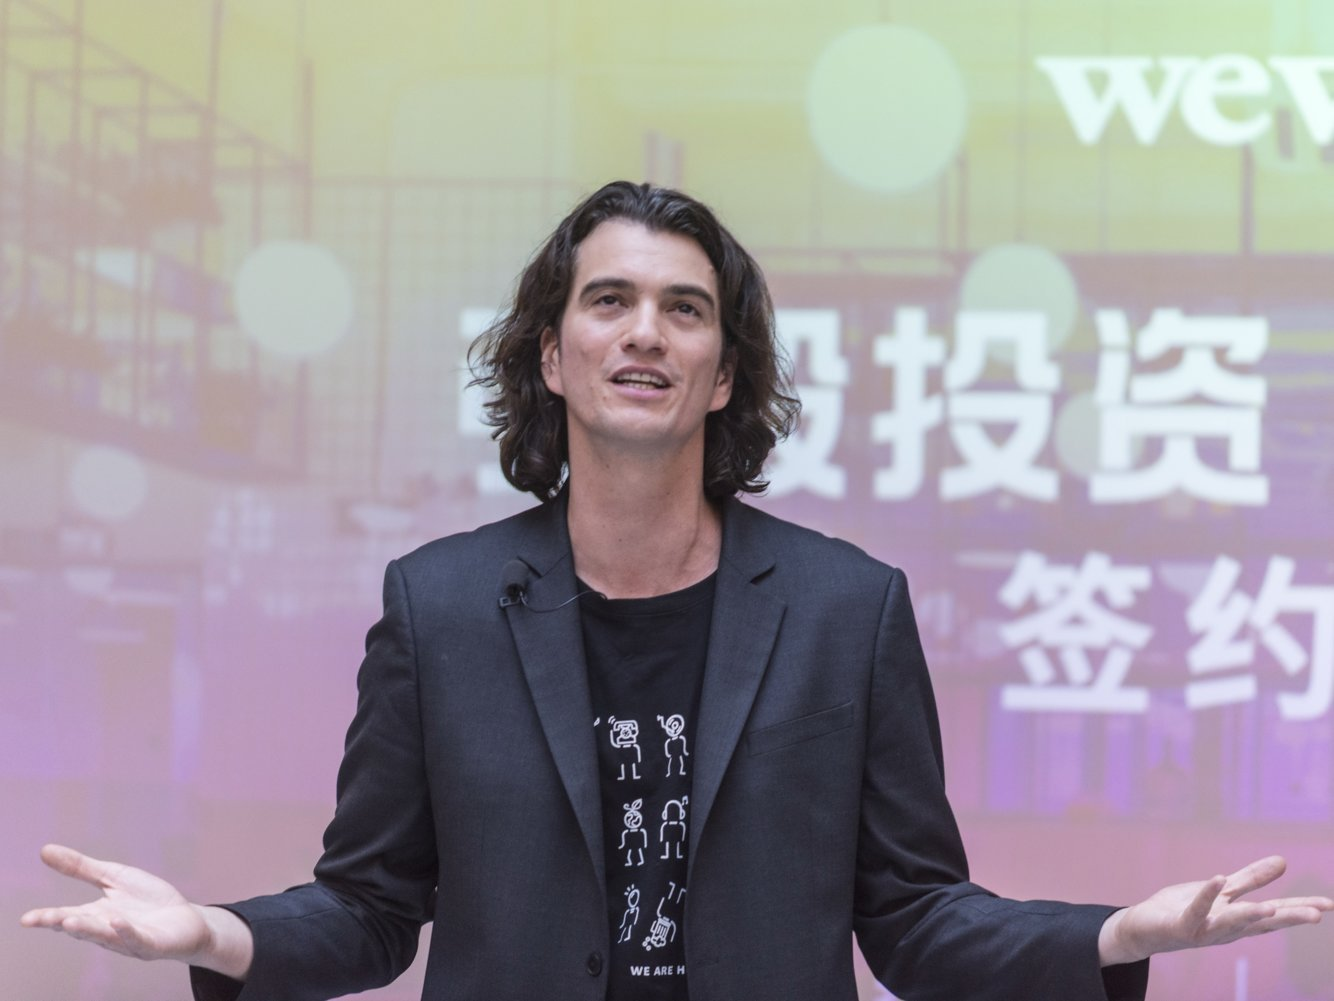 WeWork's biggest outside shareholder, SoftBank, is reportedly asking for the IPO to be put on hold because investors don't seem interested